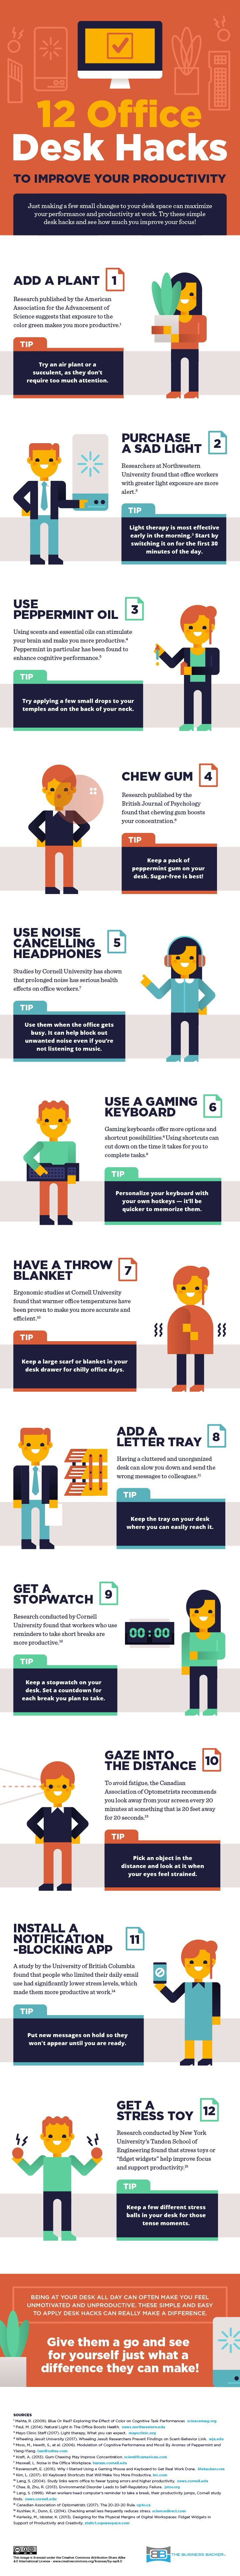 12 Office Desk Hacks To Improve Your Productivity Infographic Productivity Infographic Productivity Workplace Productivity